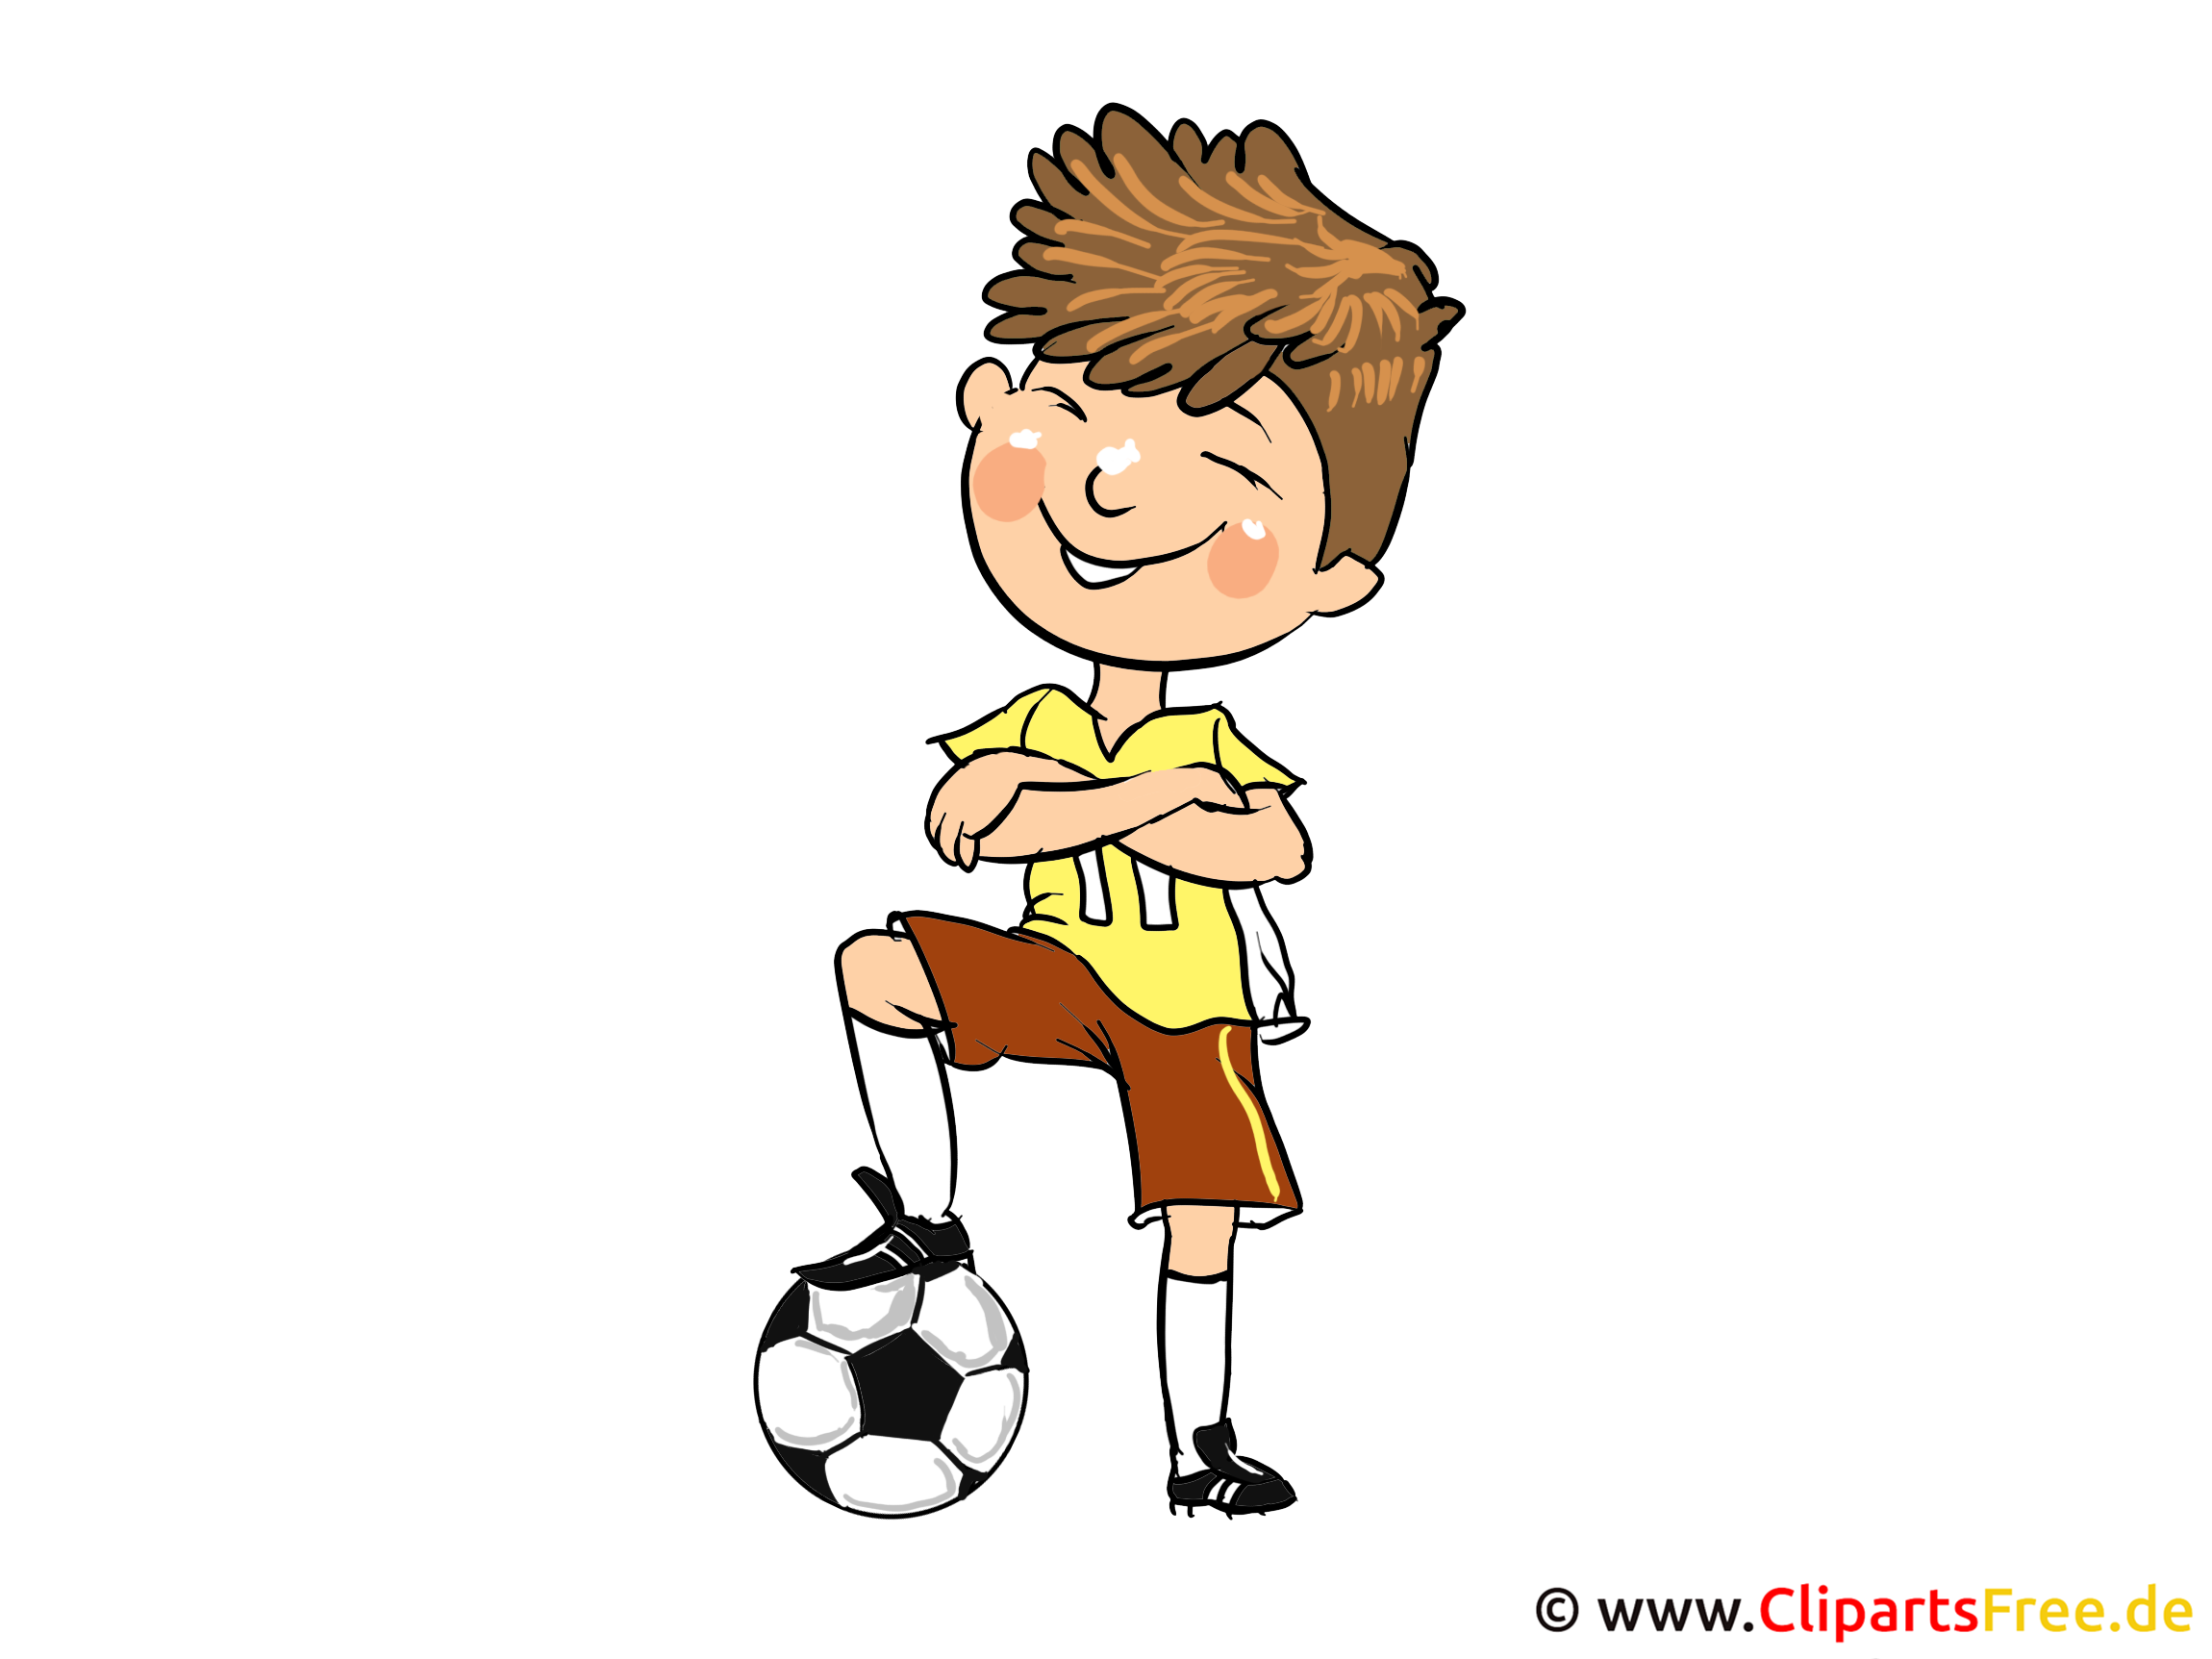 Fussballer Bild, Clipart, Cartoon, Image, Illustration